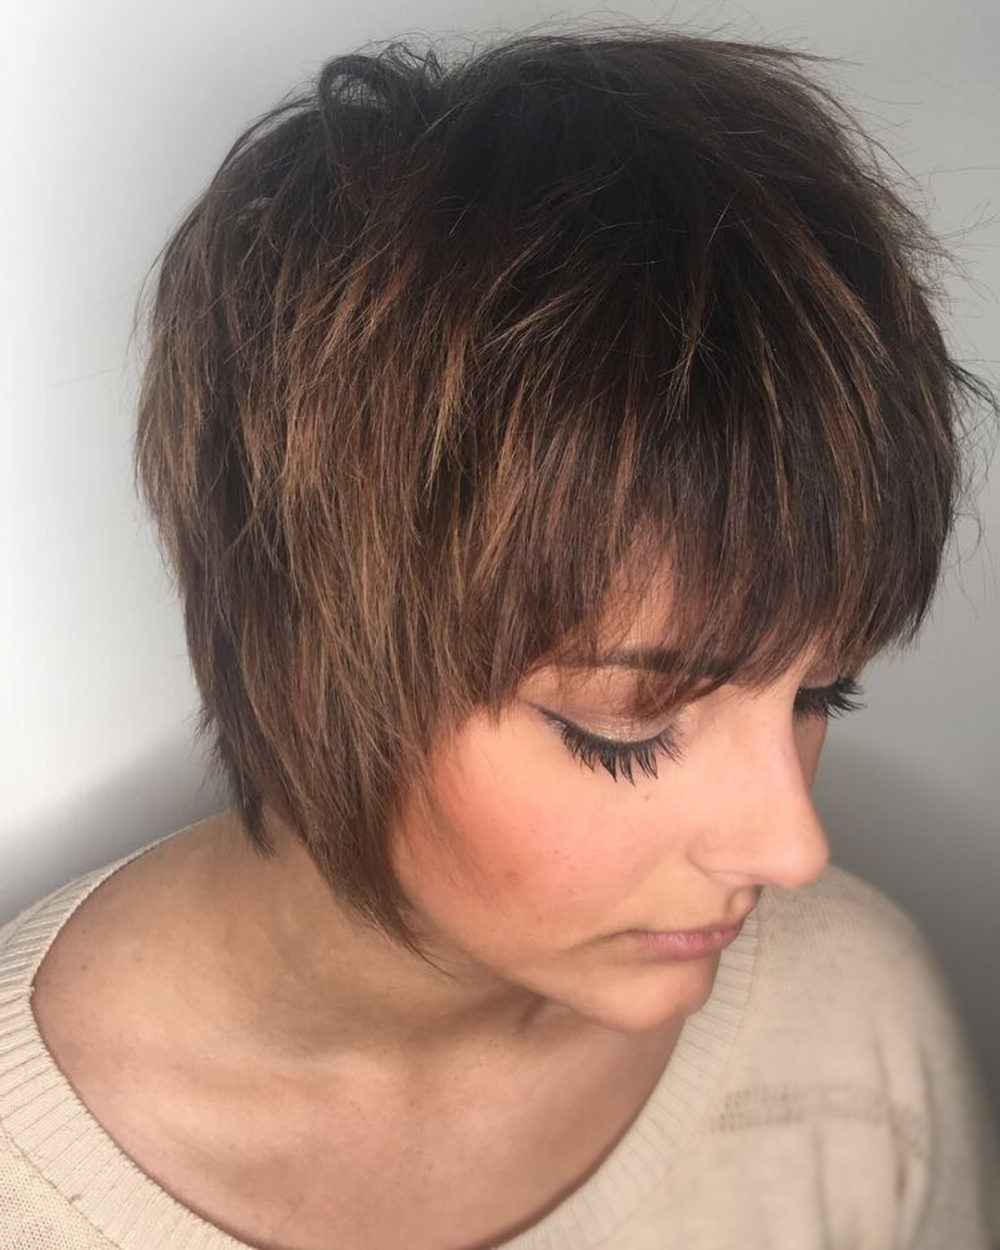 21 Fabulous Short Shaggy Haircuts For Women – Haircuts With Regard To Popular Medium Shag Haircuts With Crown Layers (View 14 of 20)